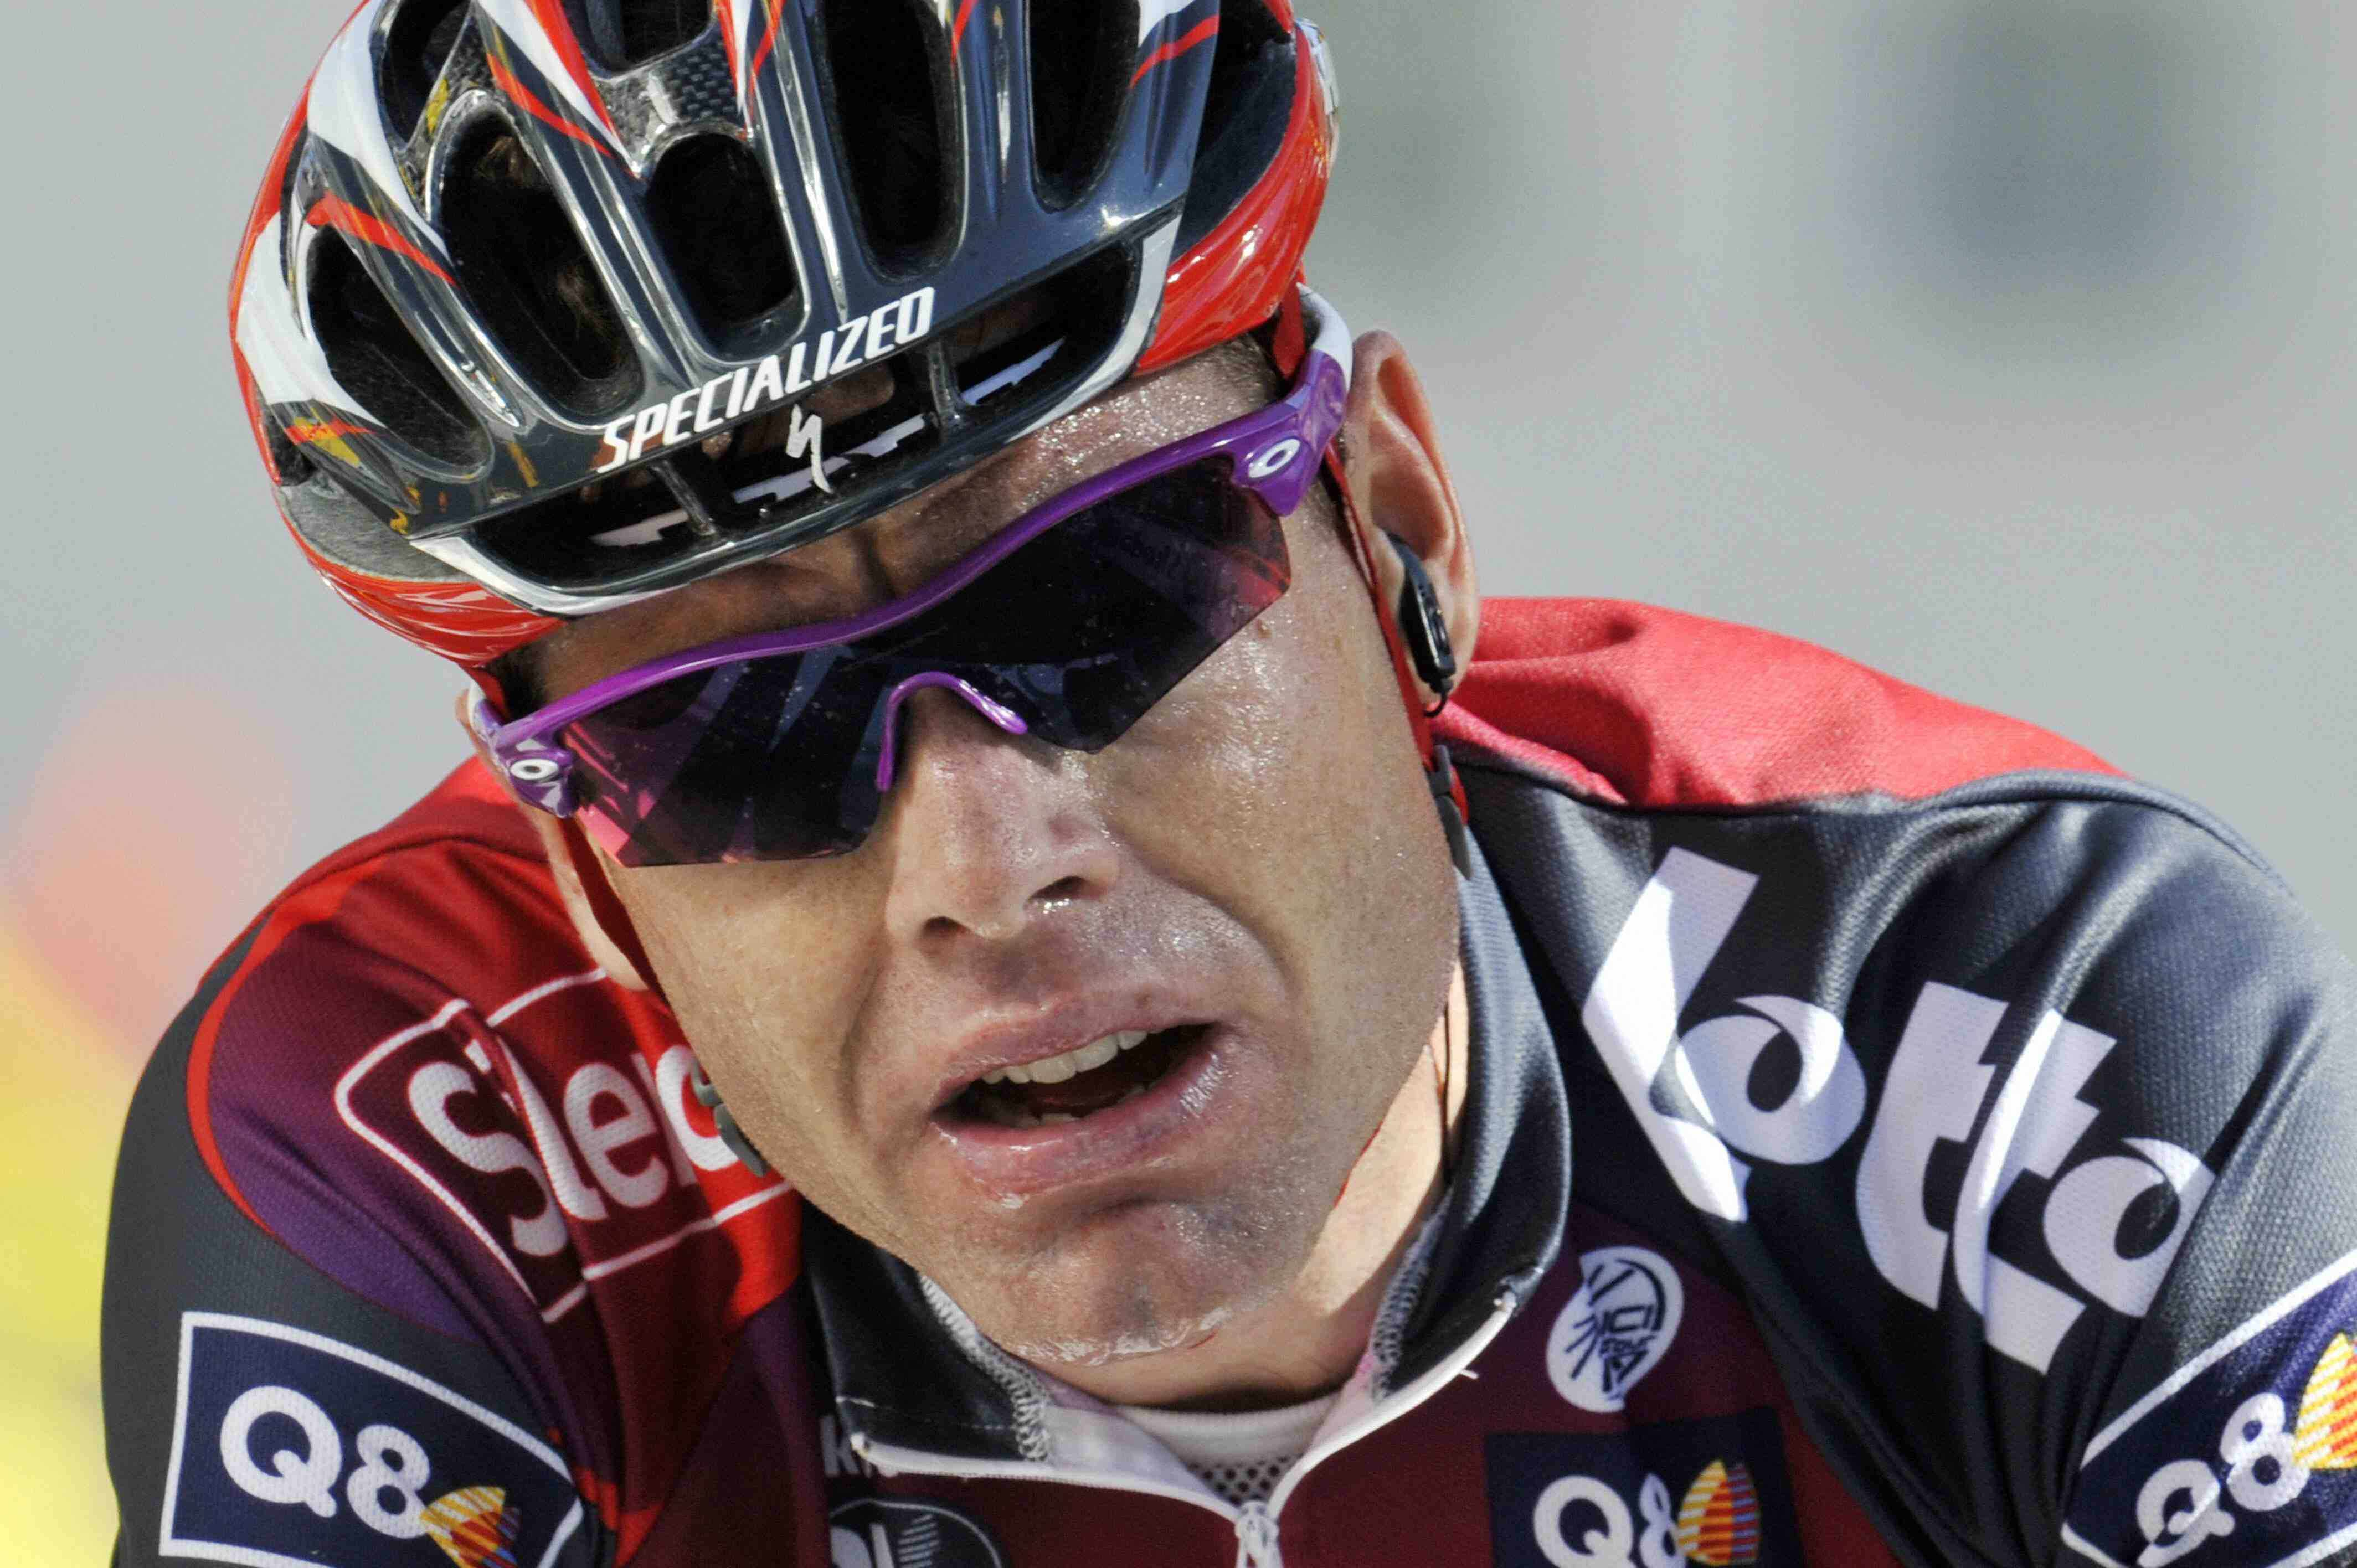 Cadel Evans, thinking about anger management while strolling up Alpe d'Huez.